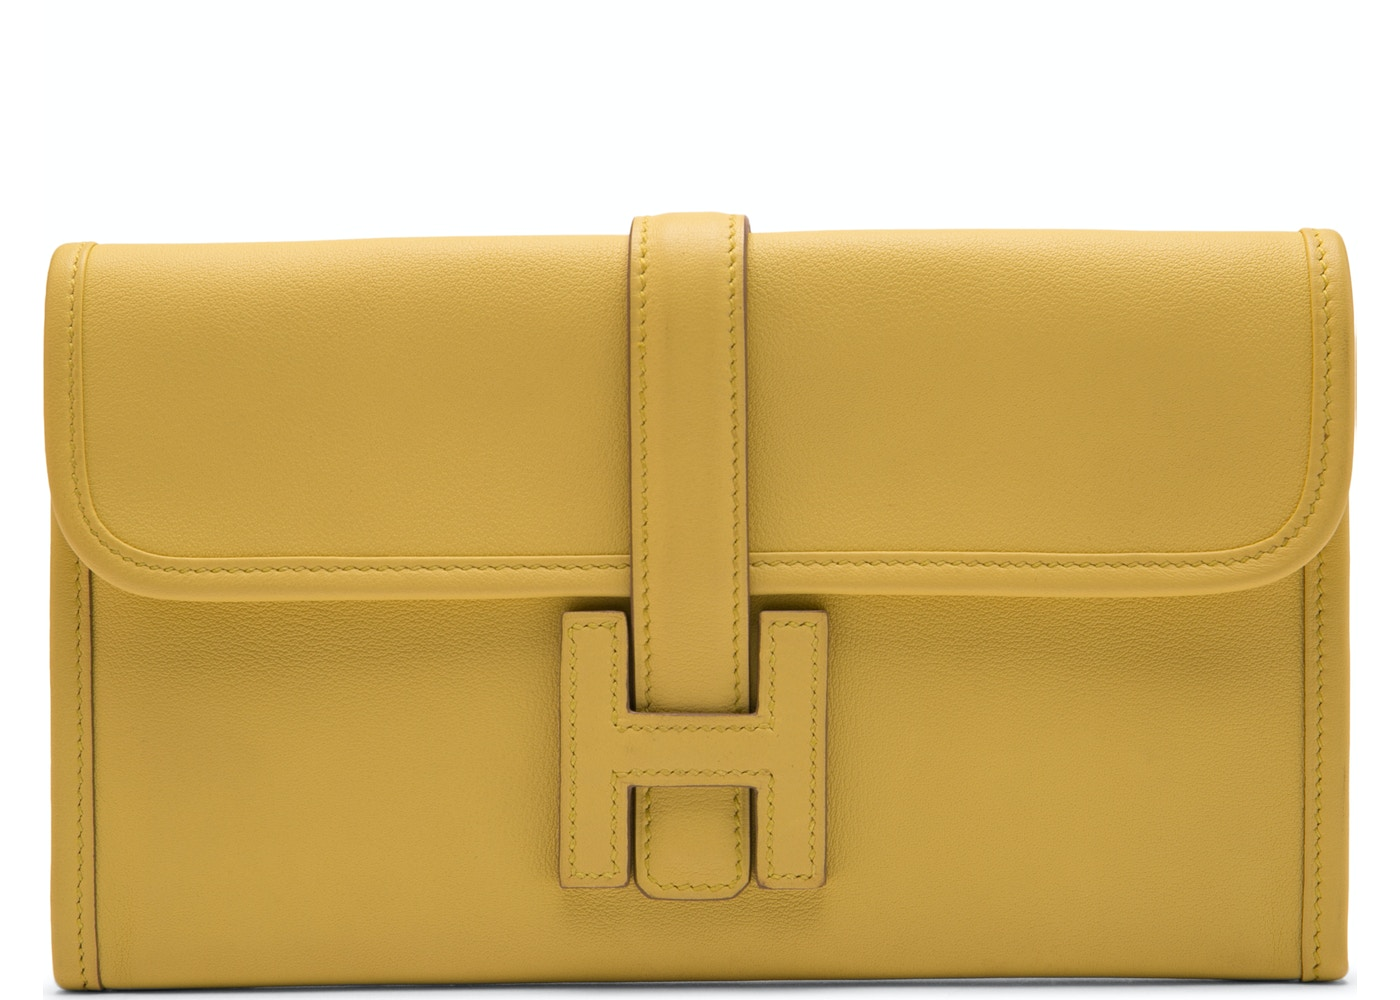 870fd96184d6 Buy   Sell Hermes Other Handbags - Total Sold